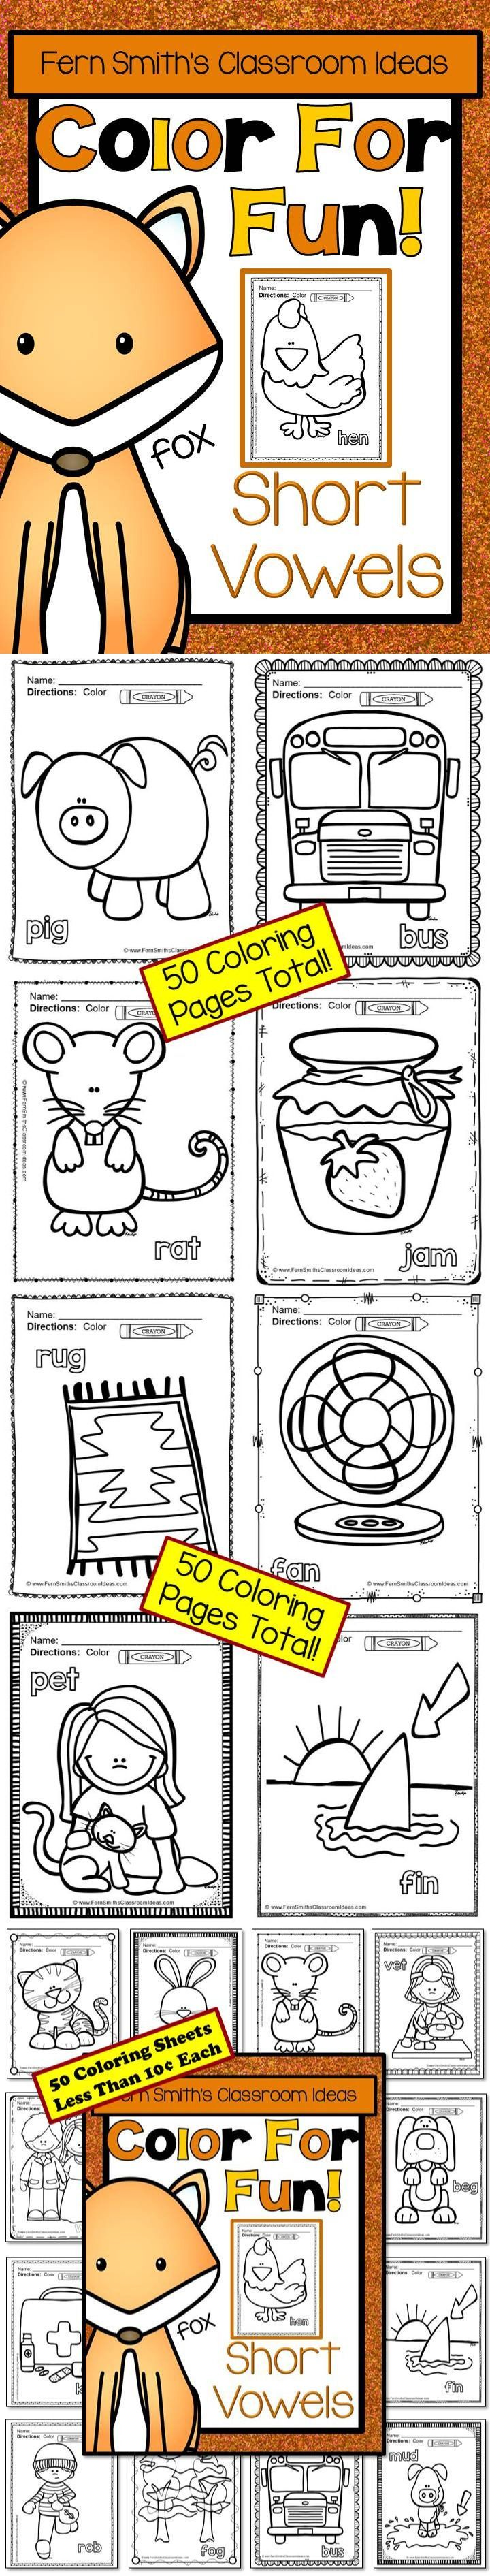 Coloring Pages For Vowels : Coloring pages for short vowels shorts and colors